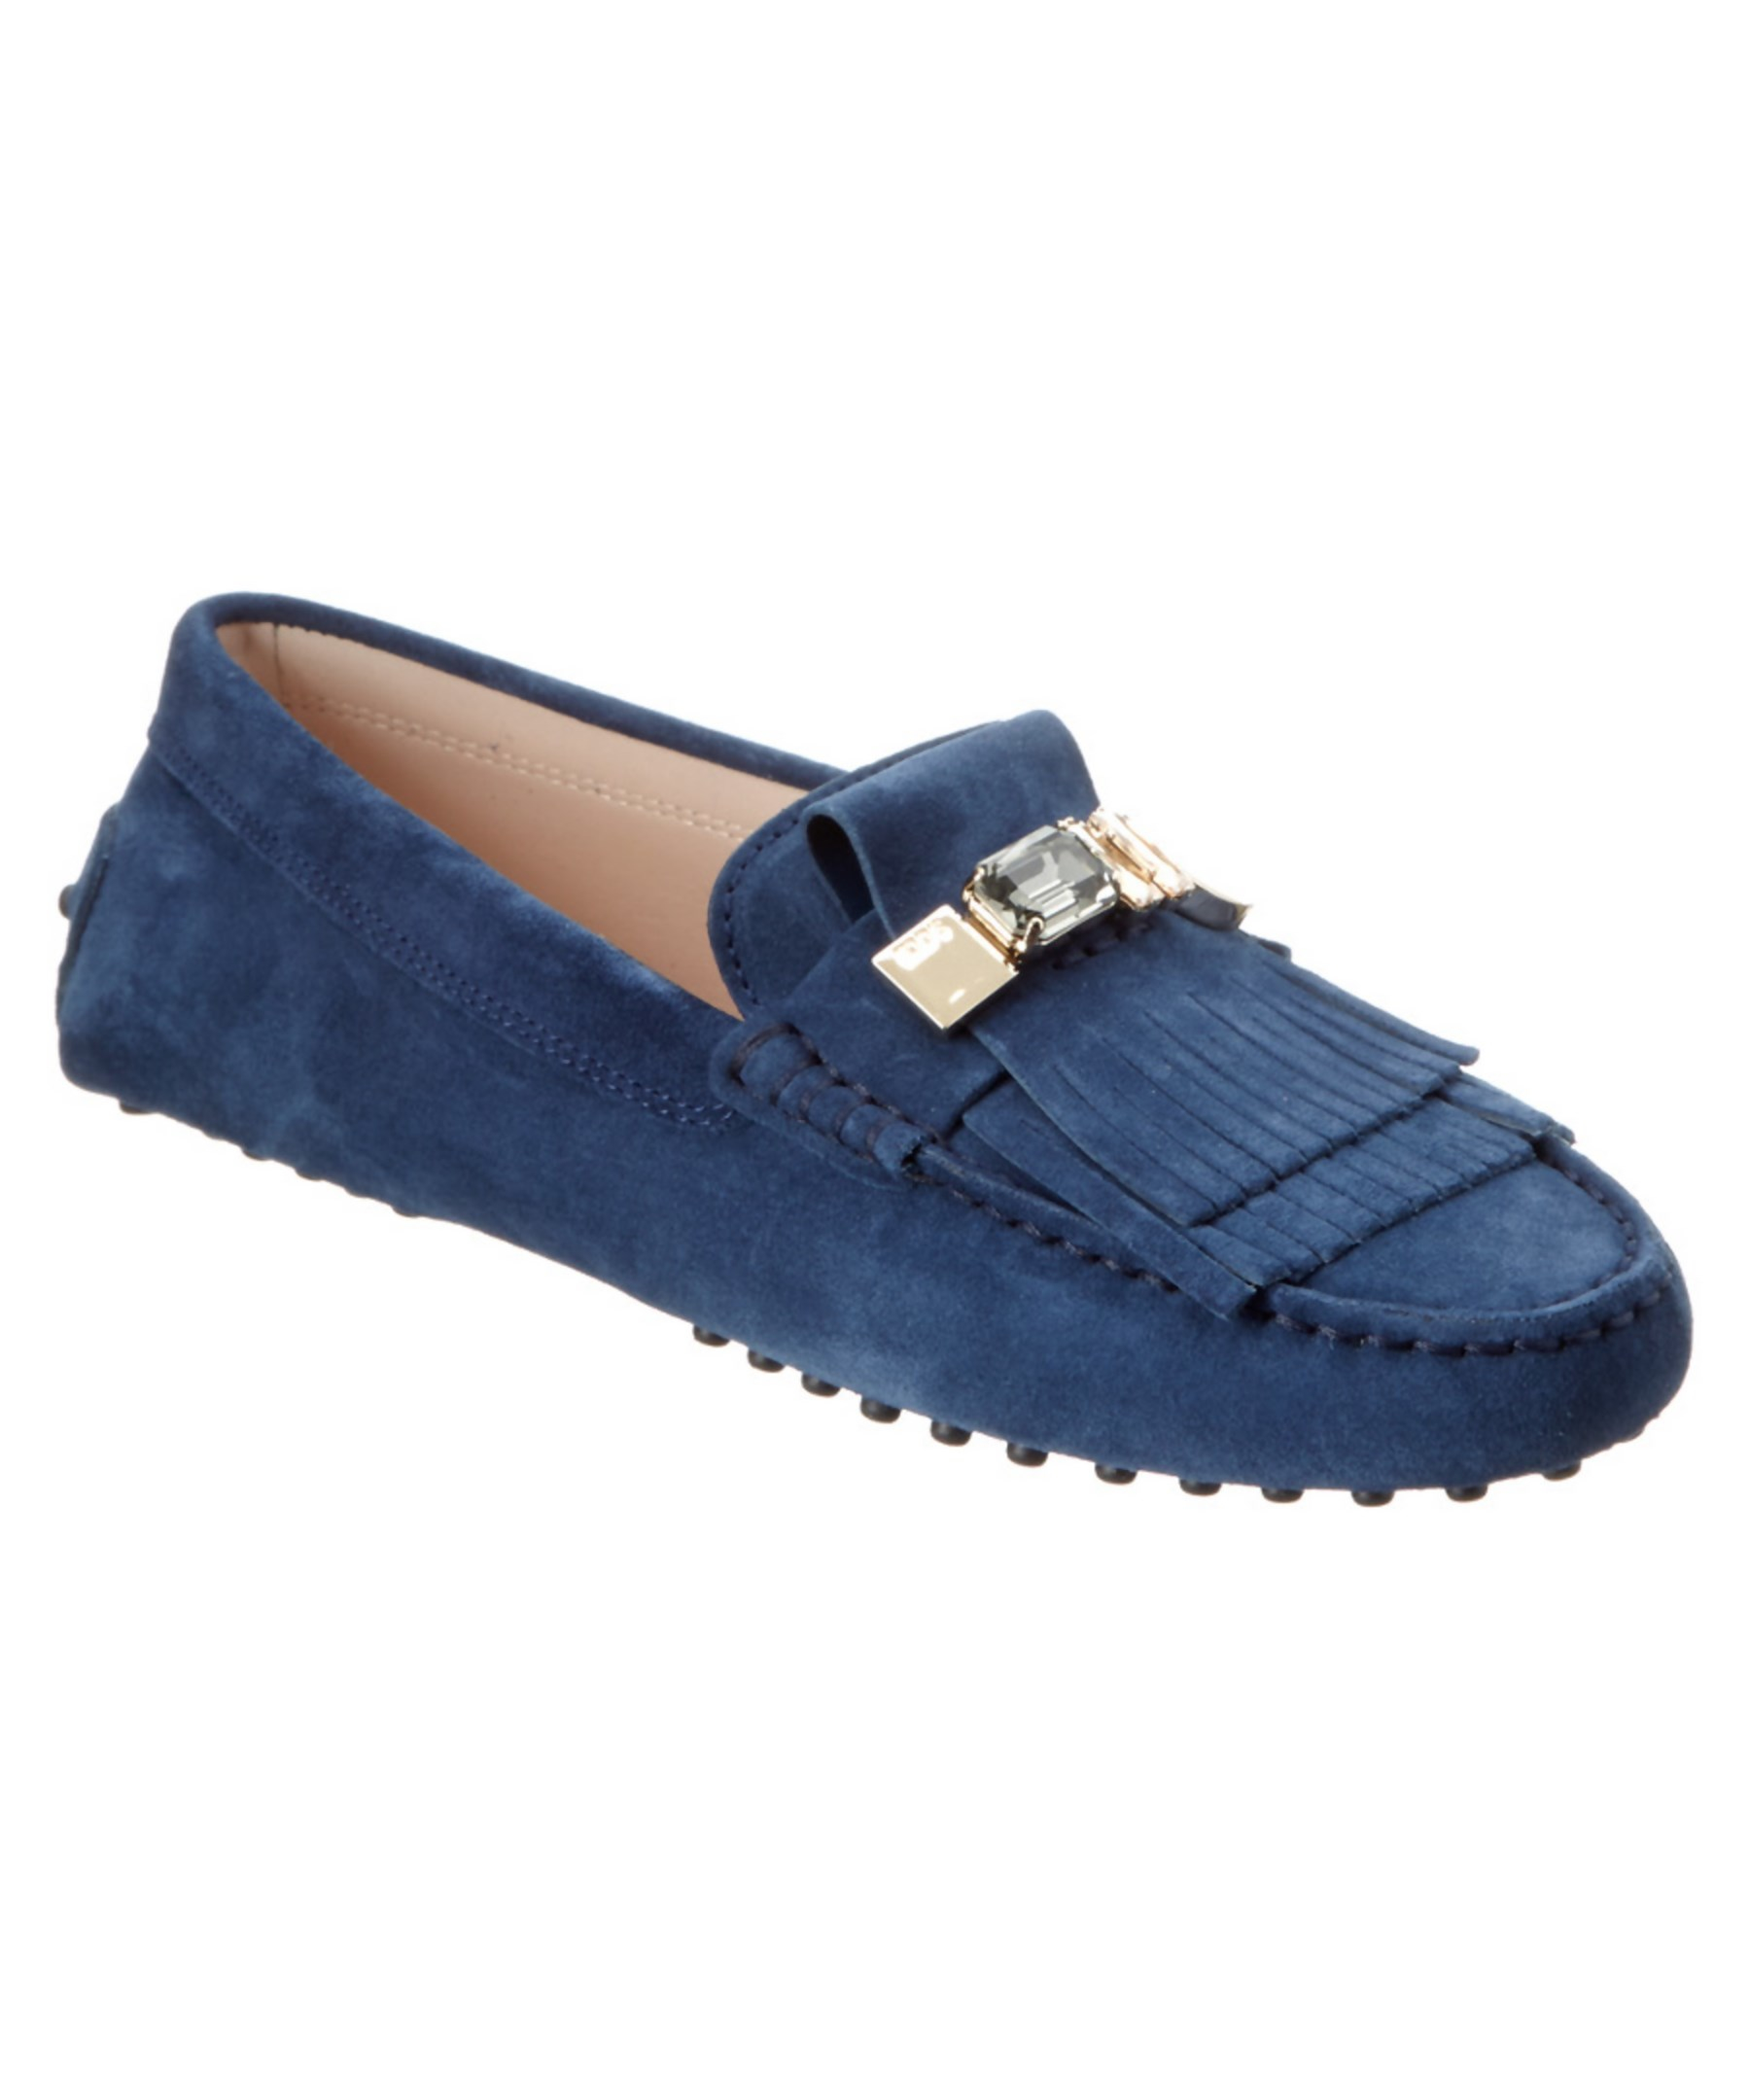 Tods Gommino Embellished Suede Driving Shoe In Blue navy